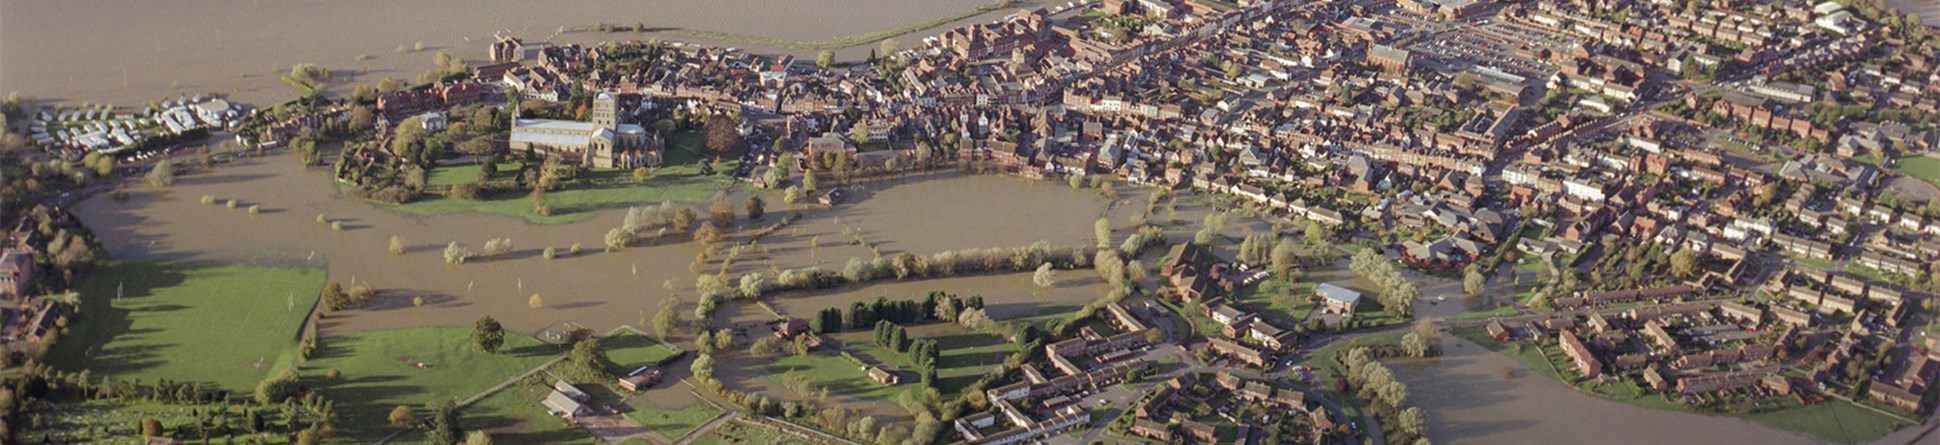 Flooding in and around Tewkesbury in 2007